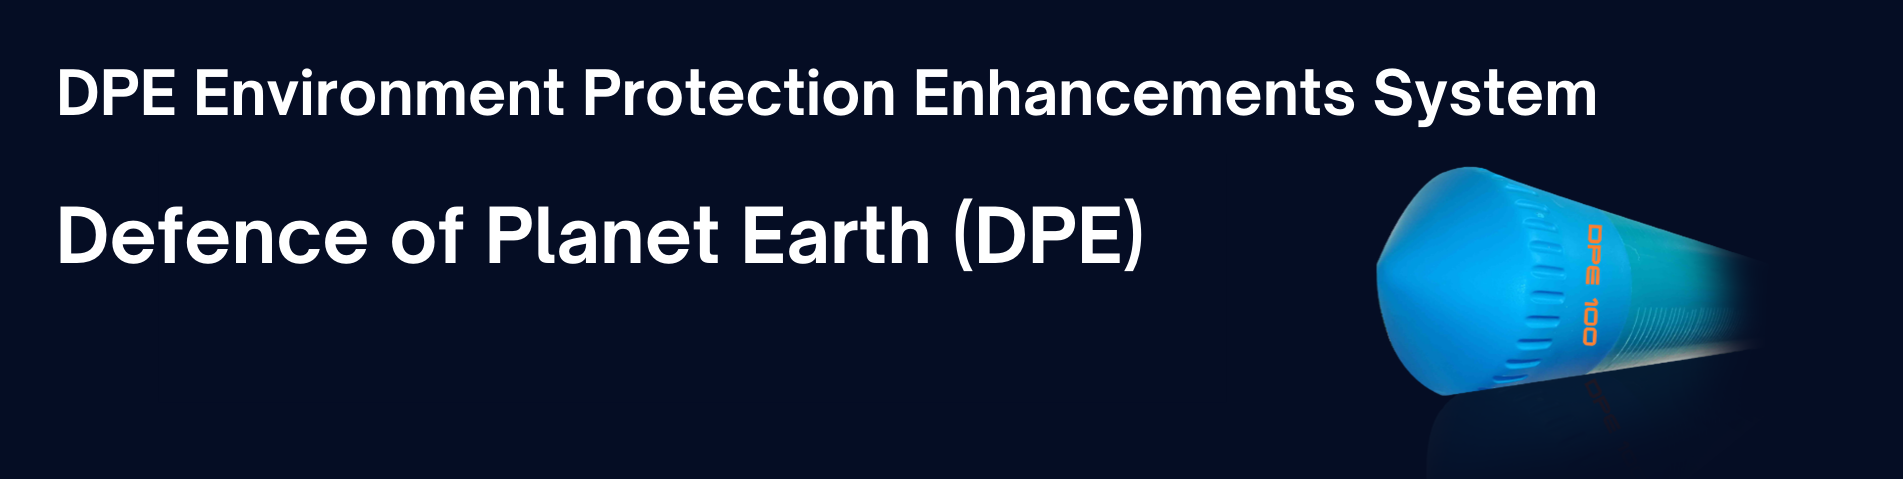 DPE Environment Protection Enhancements System